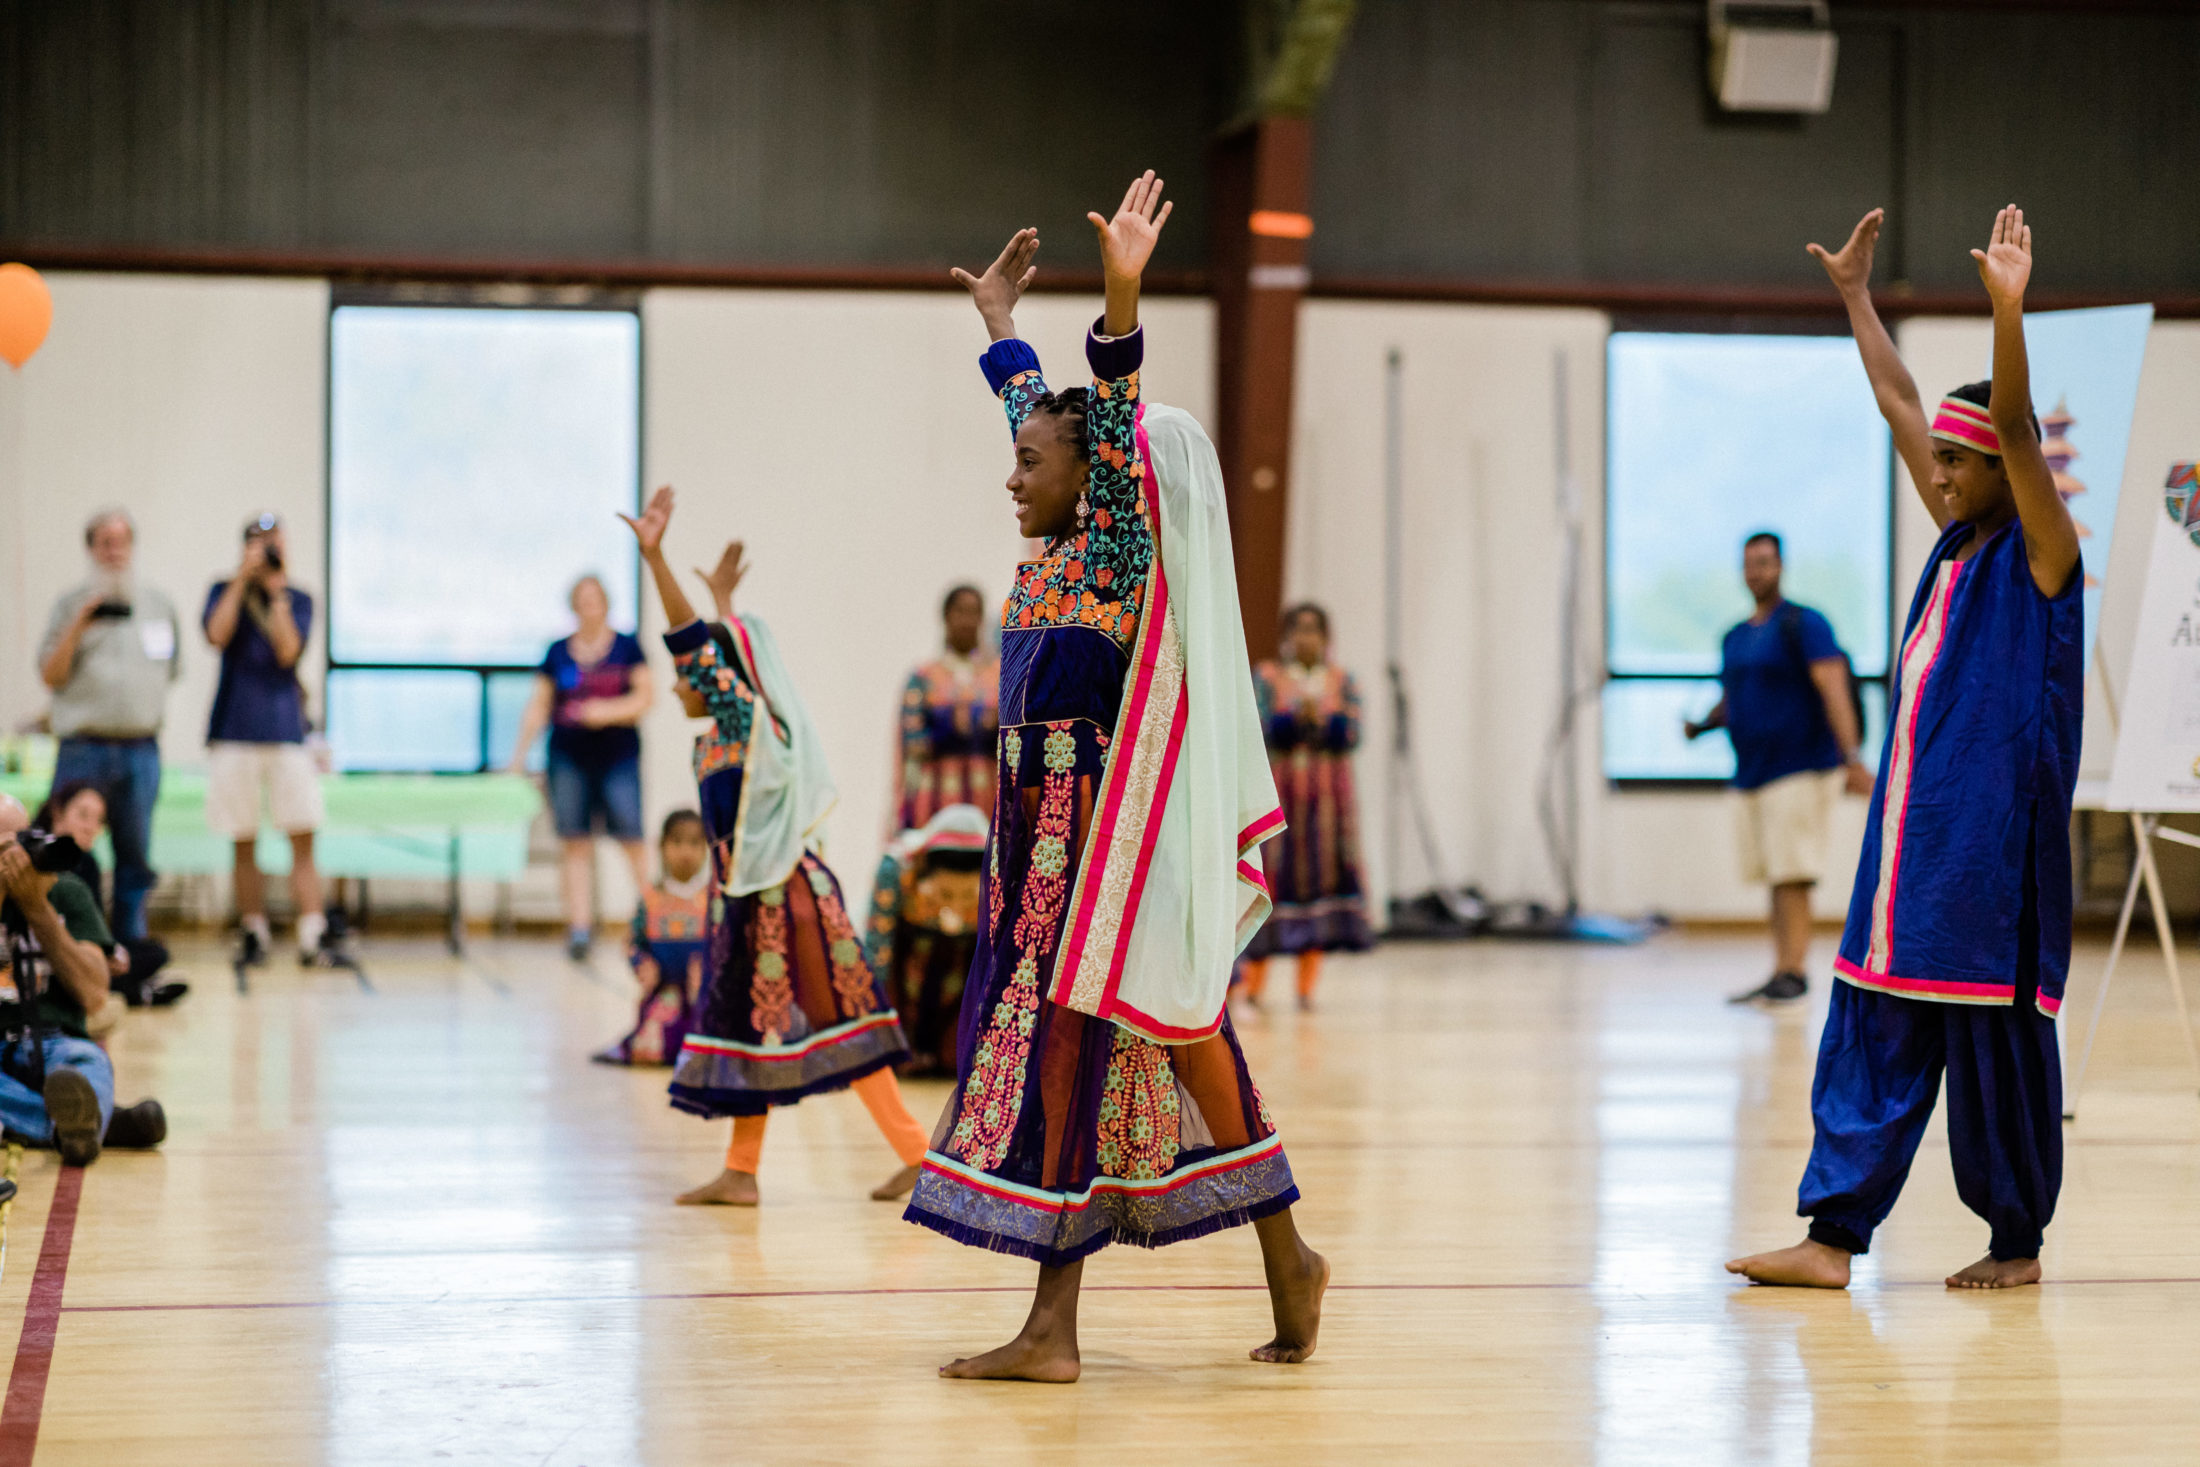 Indian and Nepalese children participate in traditional dance classes.